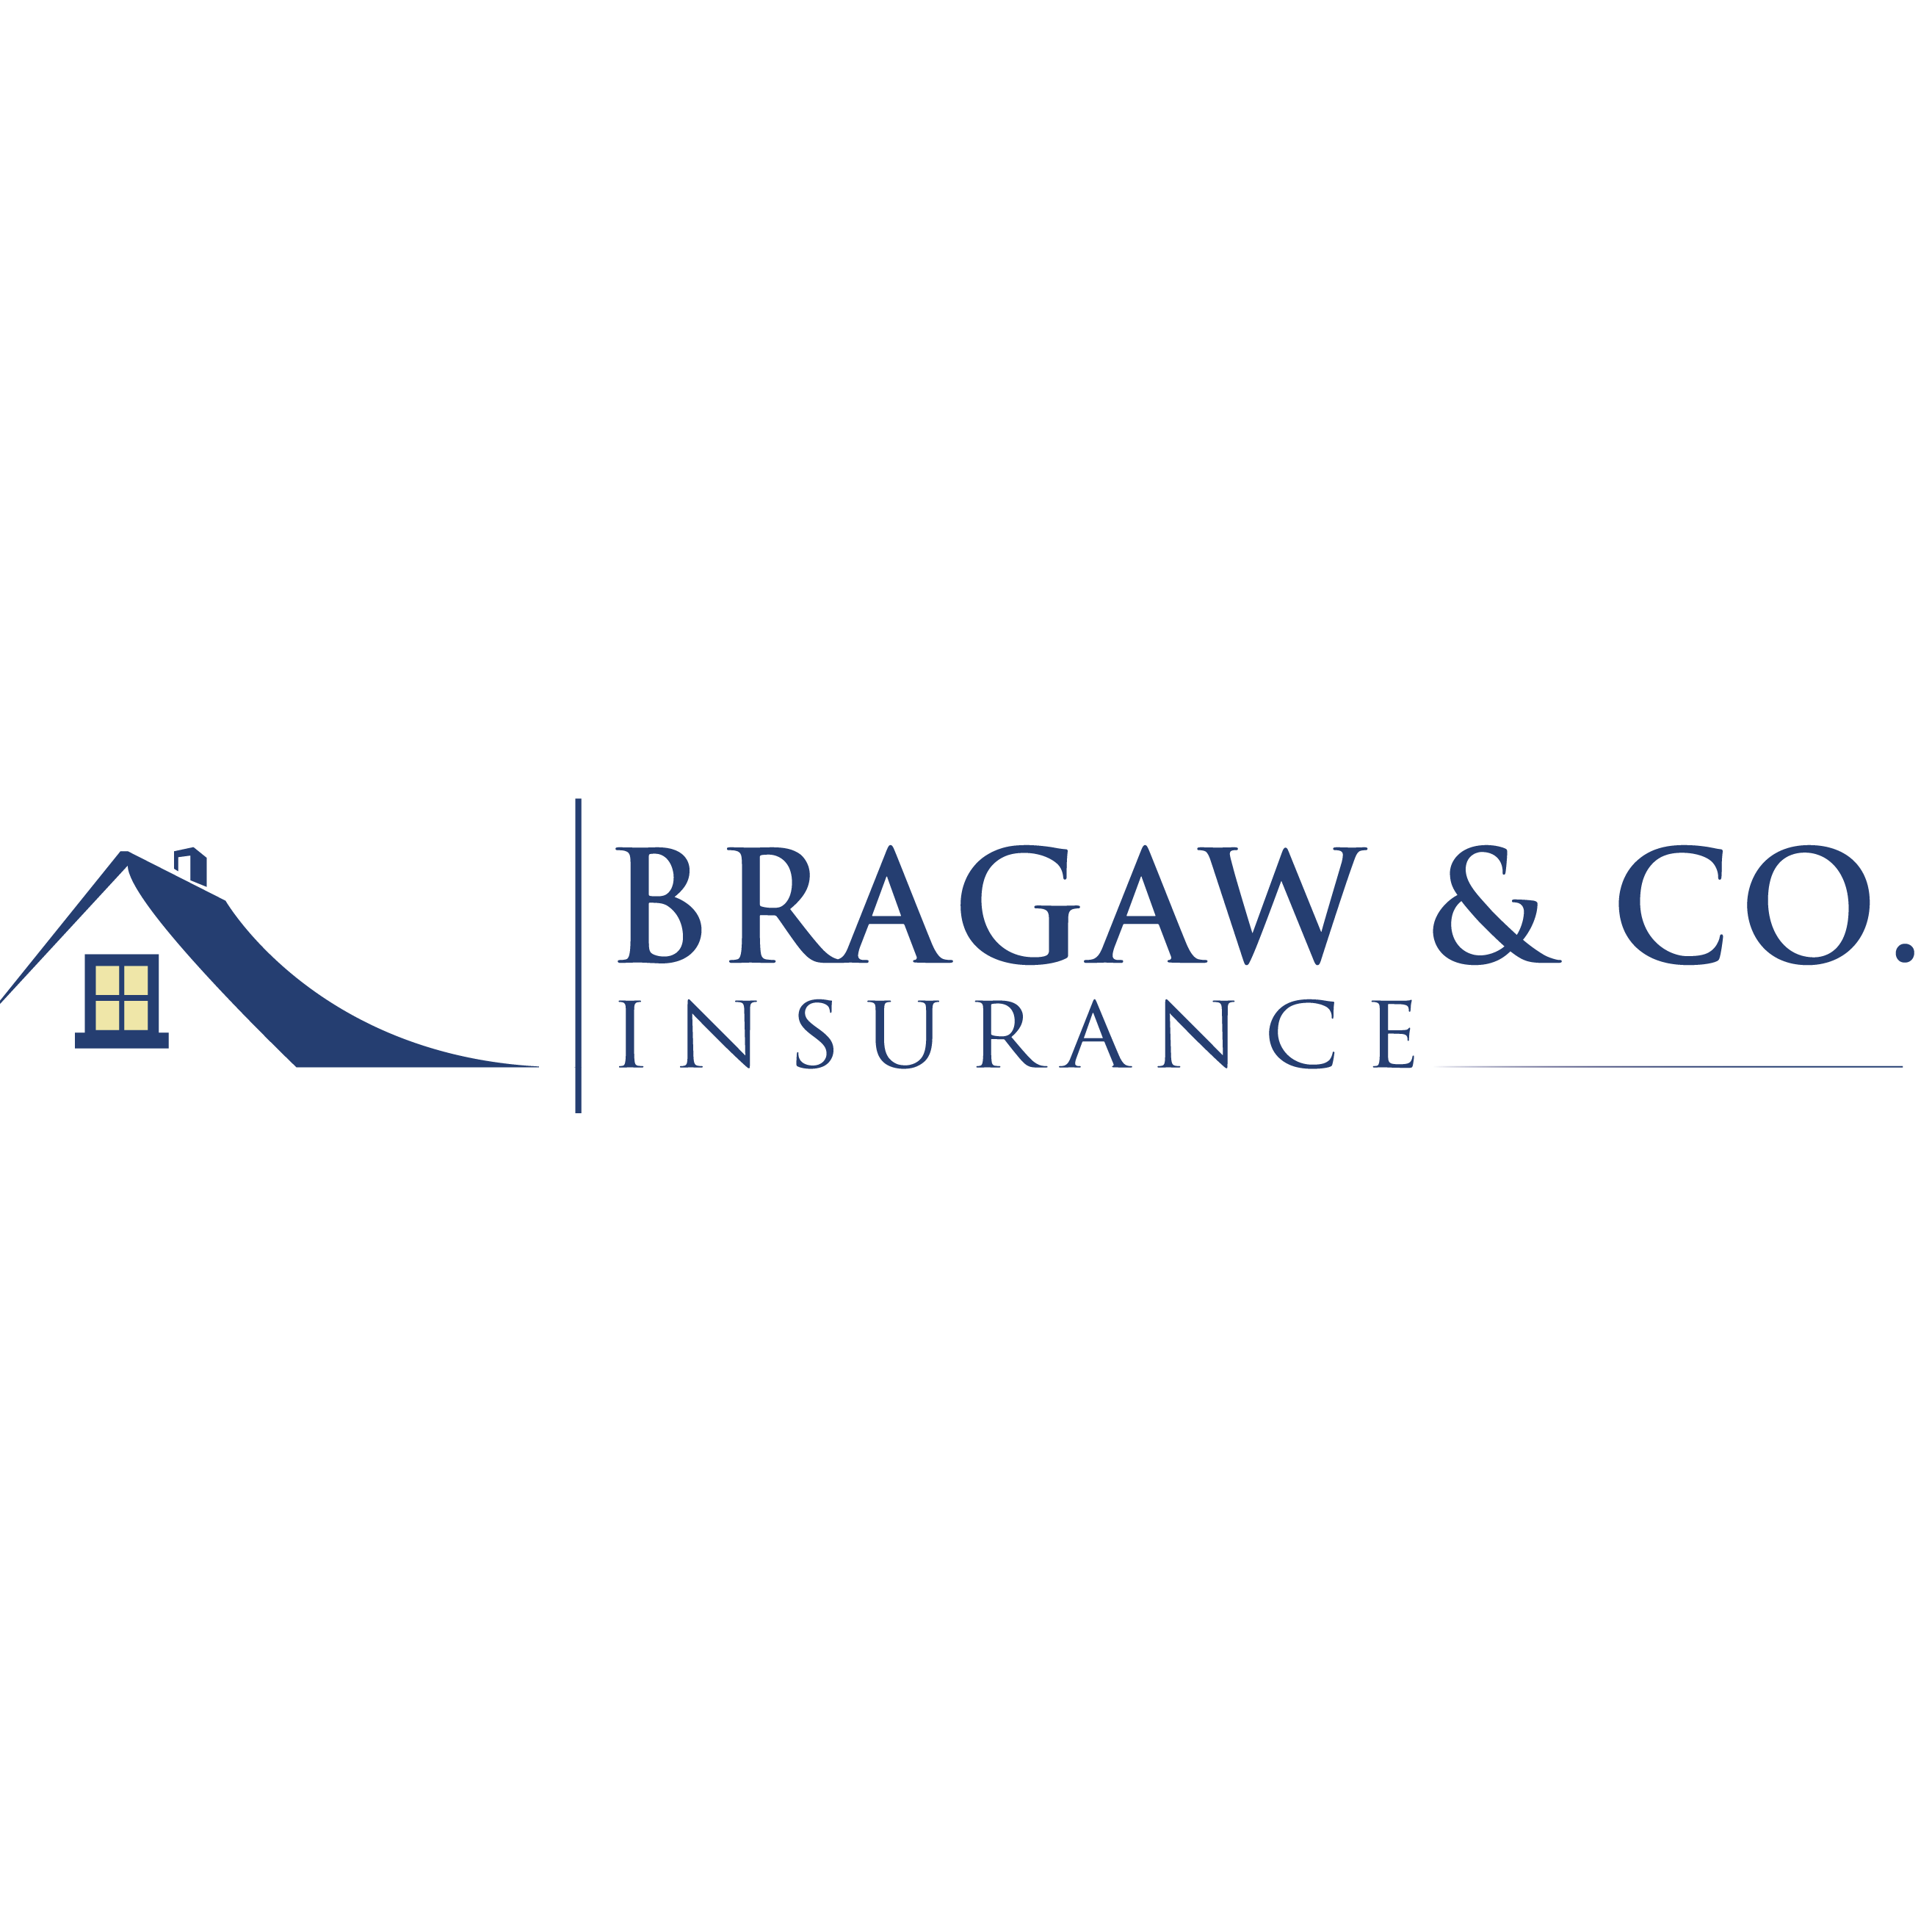 Bragaw and Co. Insurance - Washington, NC - Insurance Agents